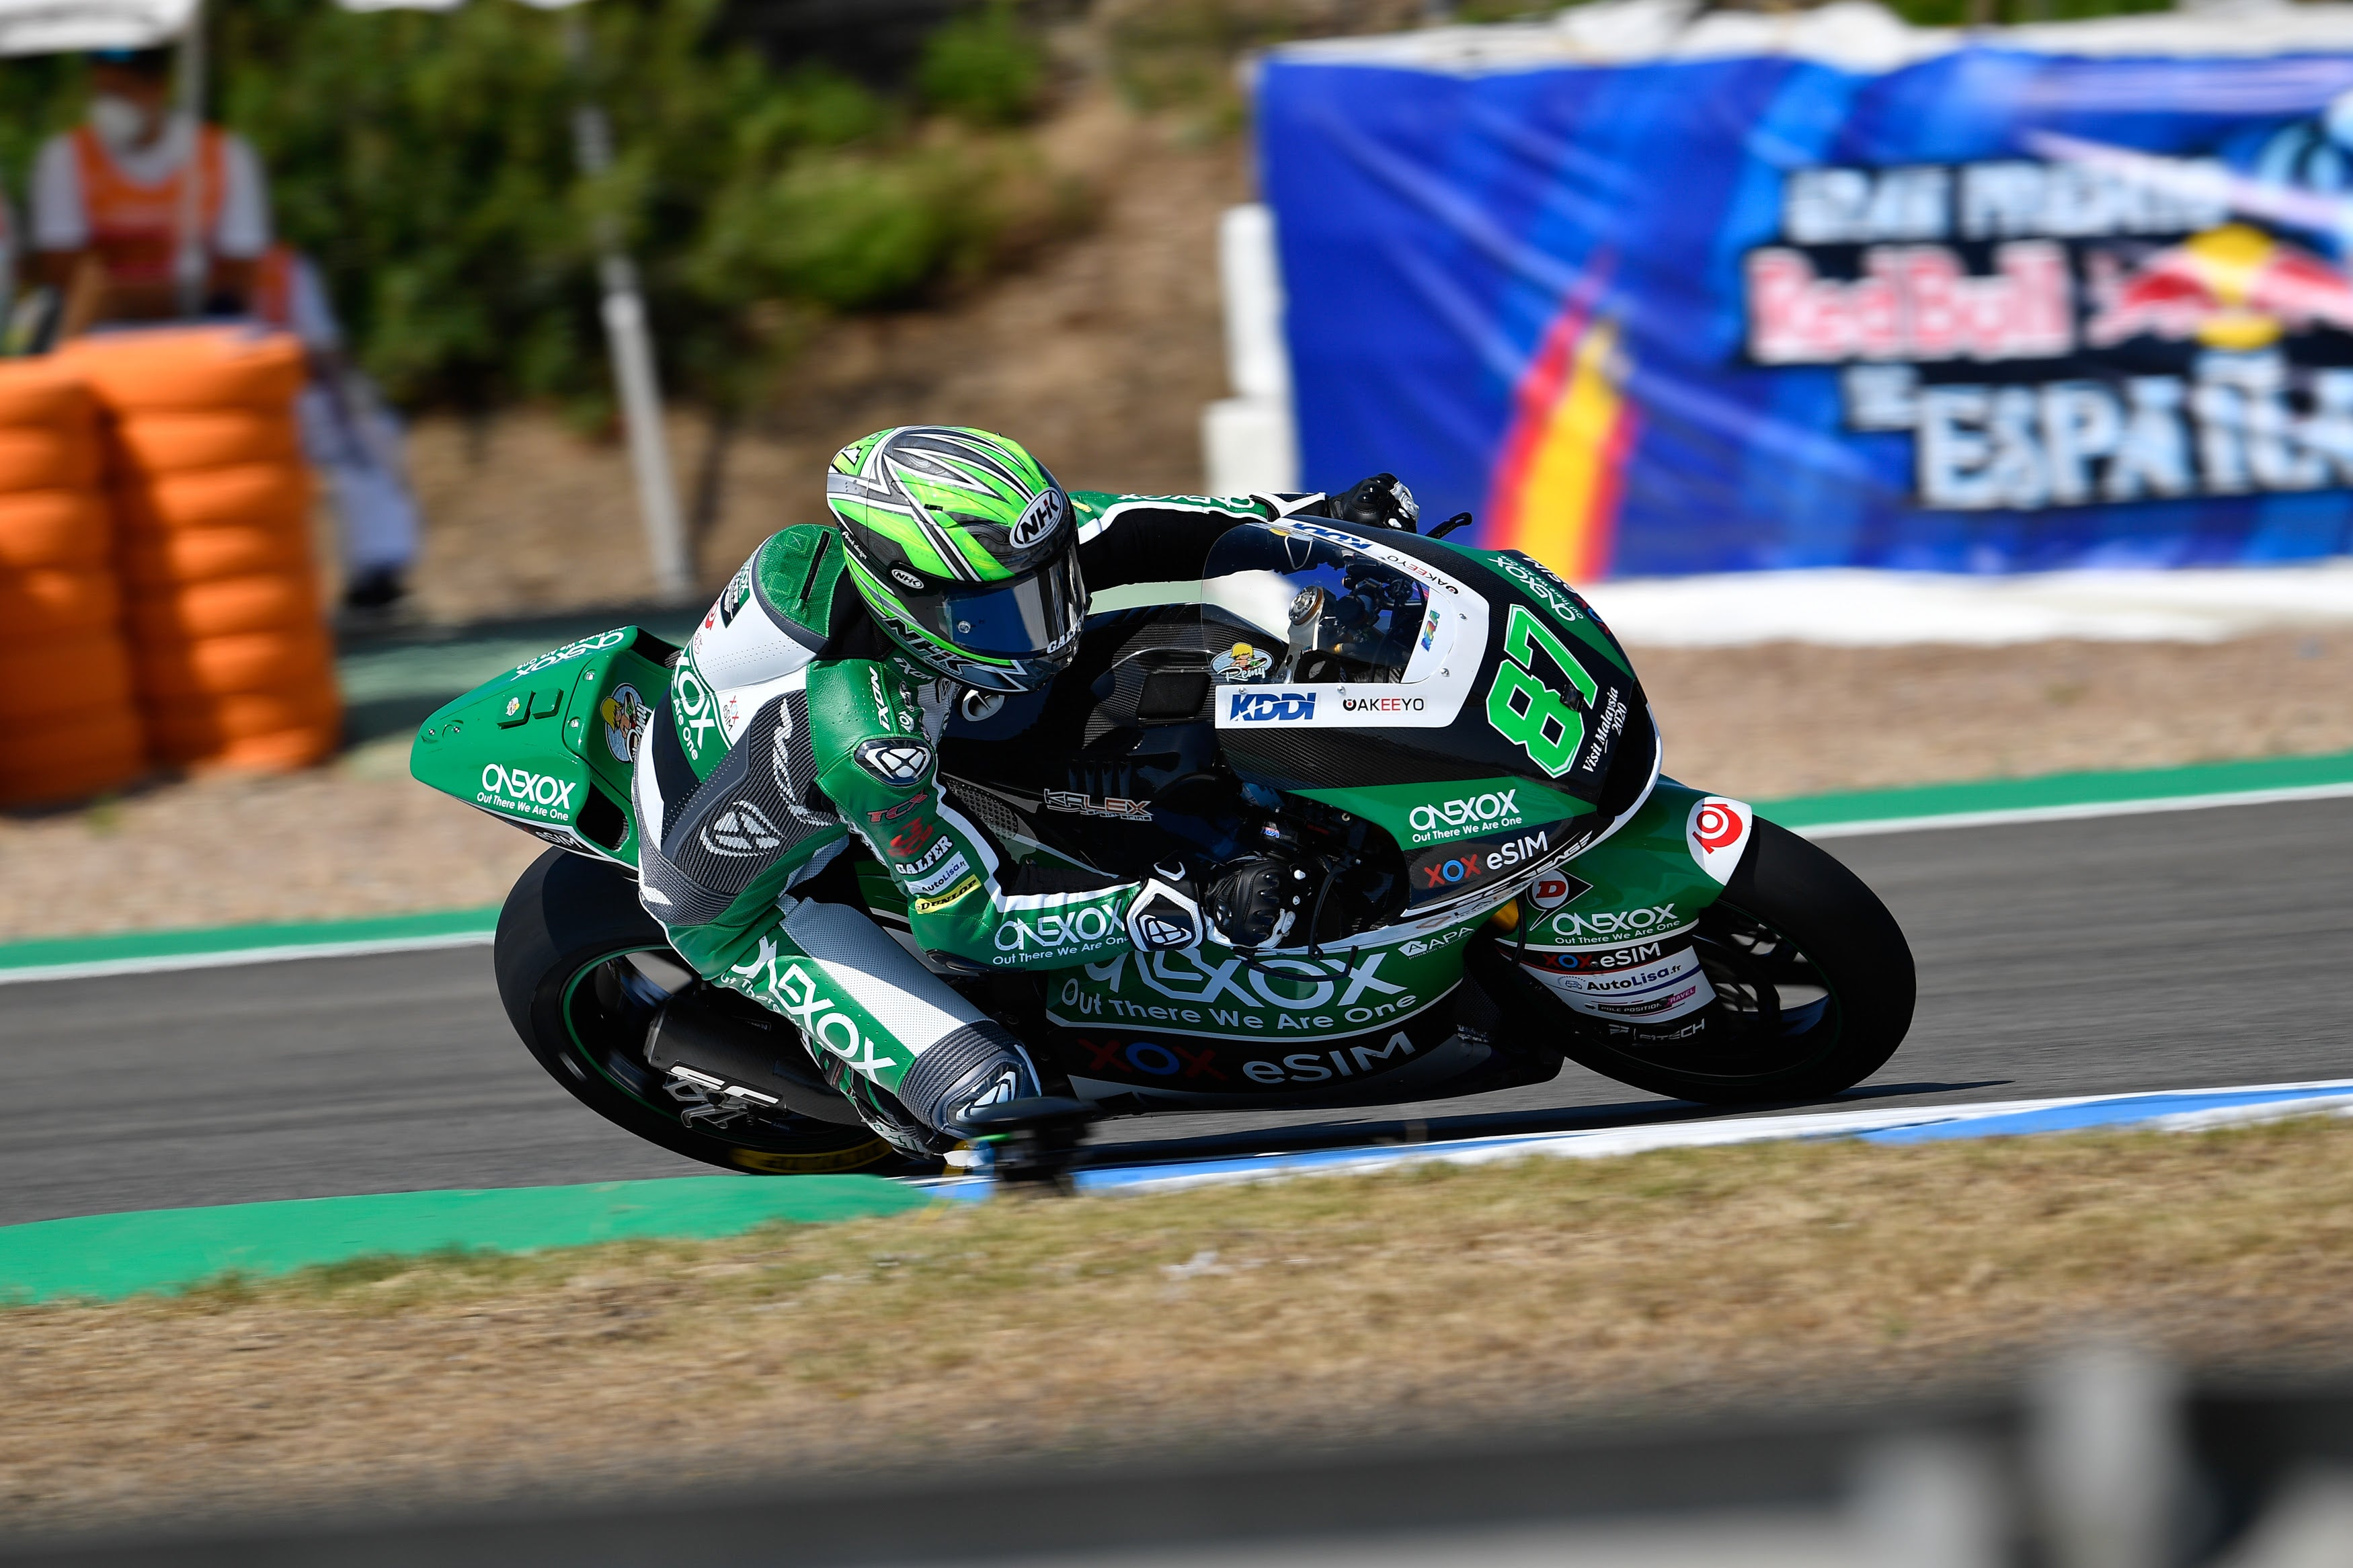 Difficult qualifying session for the ONEXOX TKKR SAG TEAM in Jerez due to the high temperatures